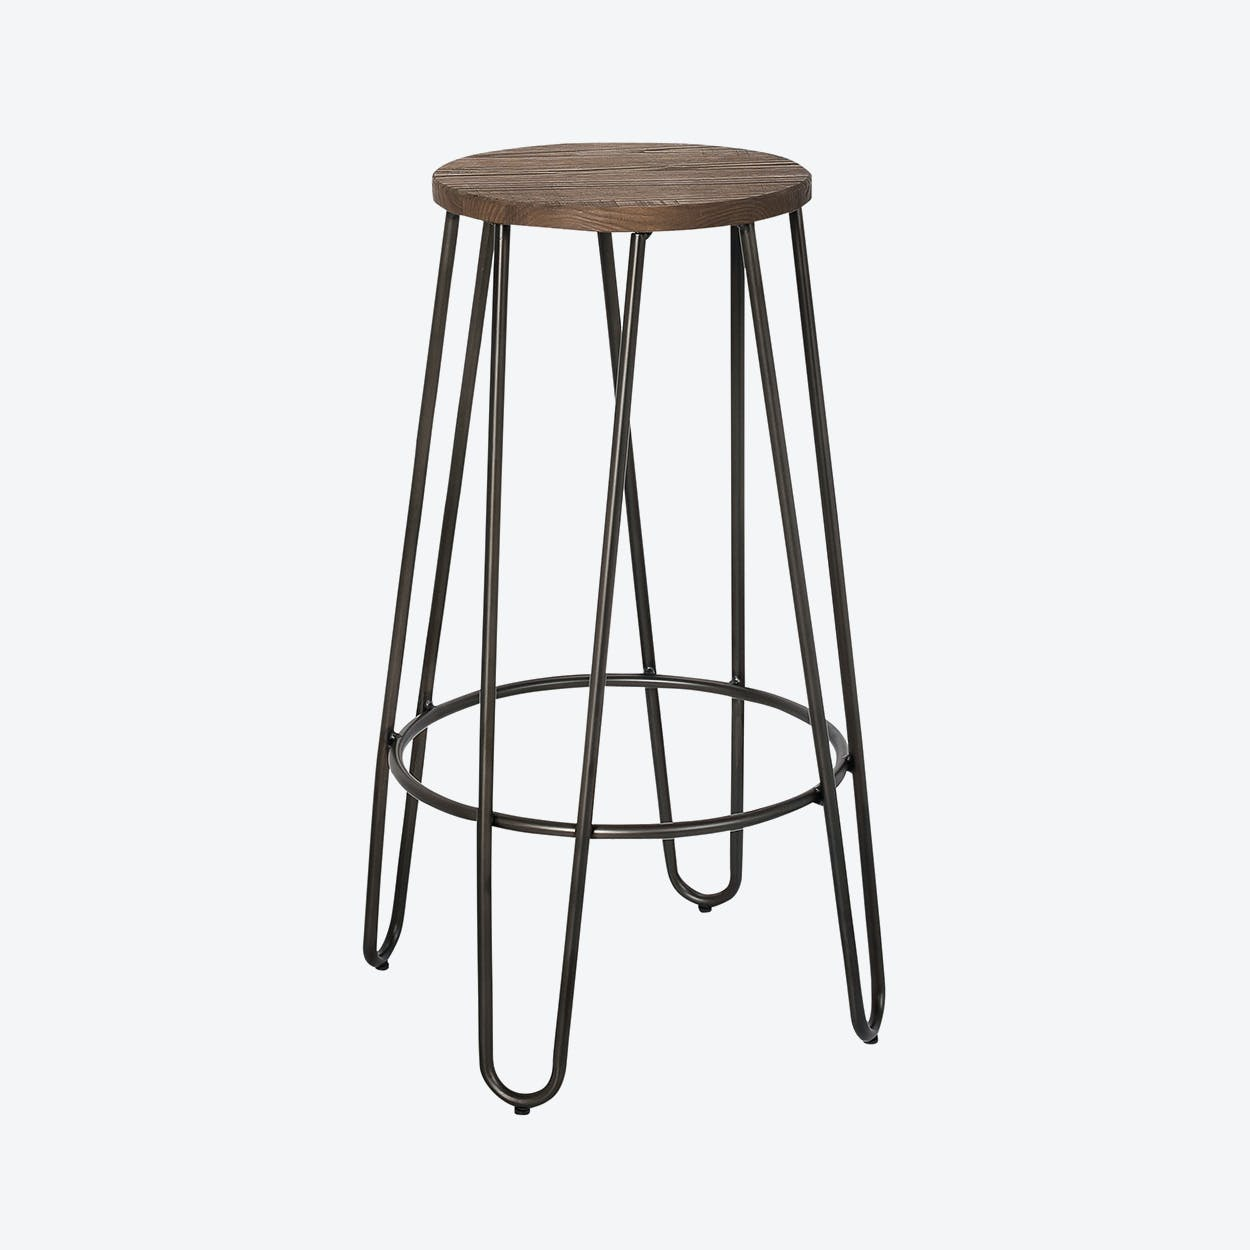 Mango Wood Round Bar Stool